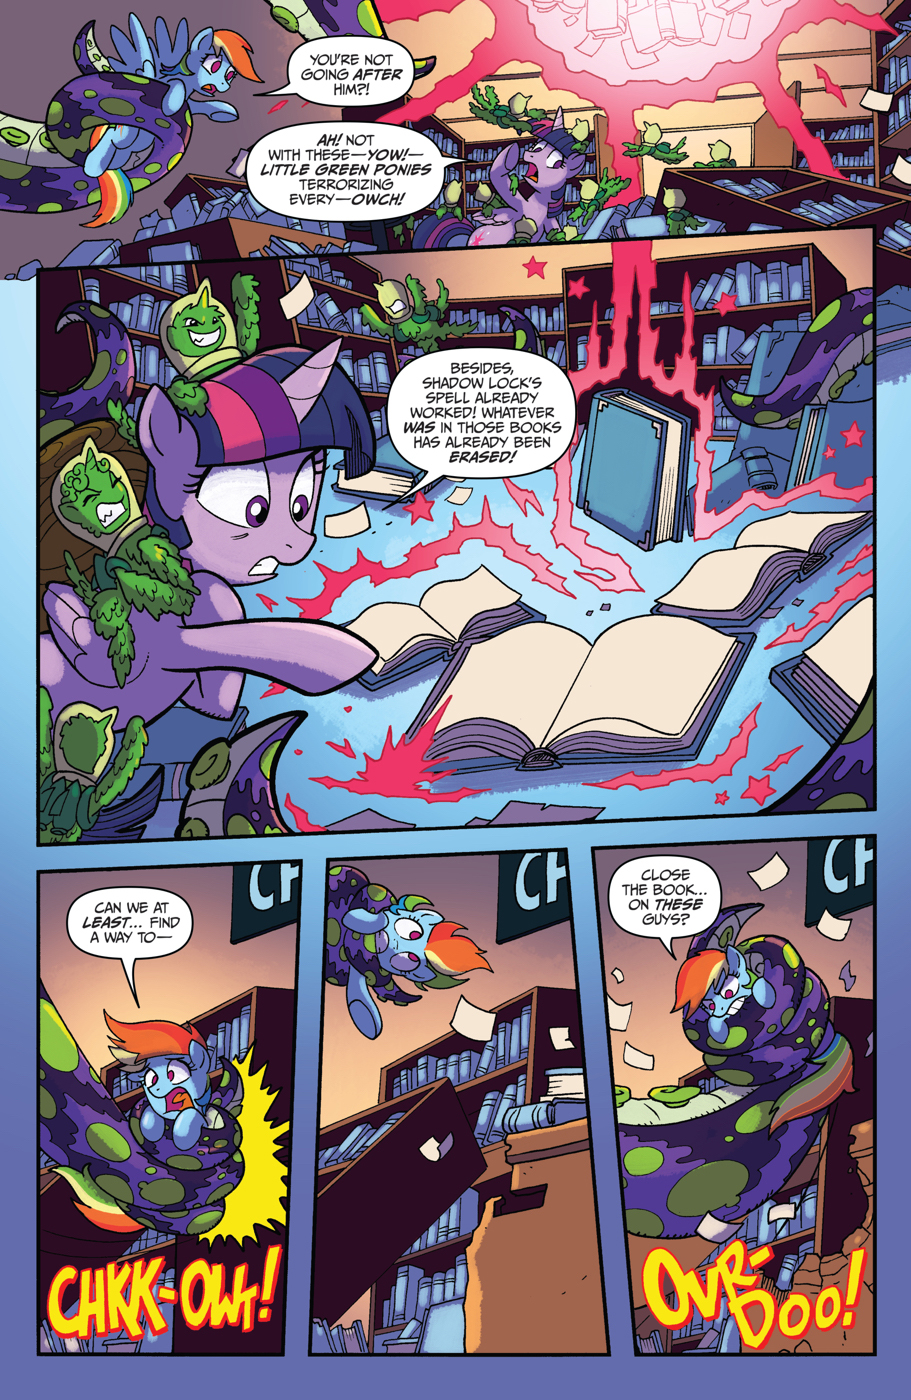 Read online My Little Pony: Friendship is Magic comic -  Issue #52 - 7